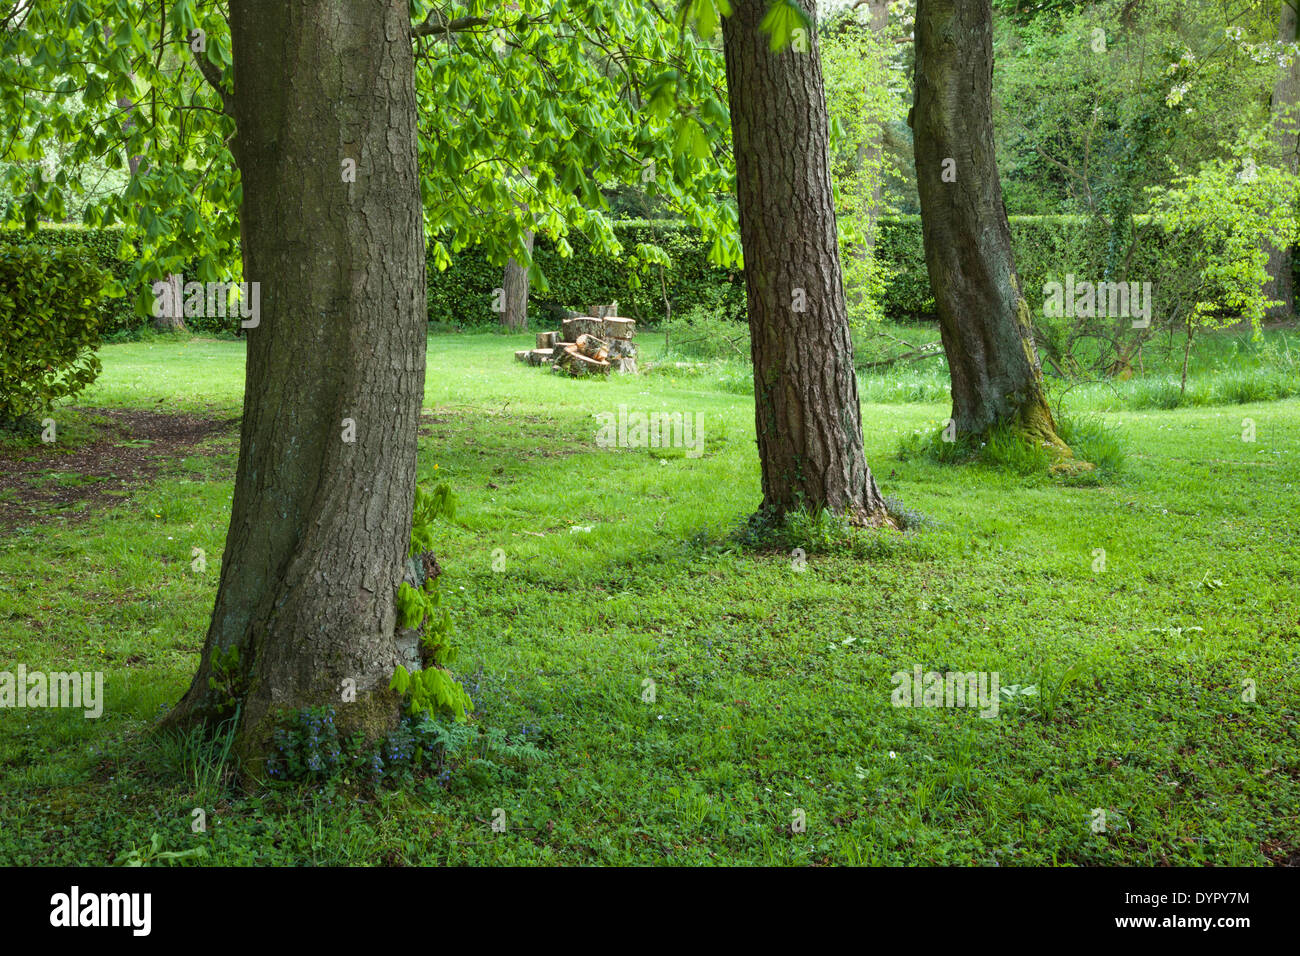 Horse chestnut trees forming part of the Western Approaches avenue at Whipsnade Tree Cathedral, Chilterns, Bedfordshire, England - Stock Image